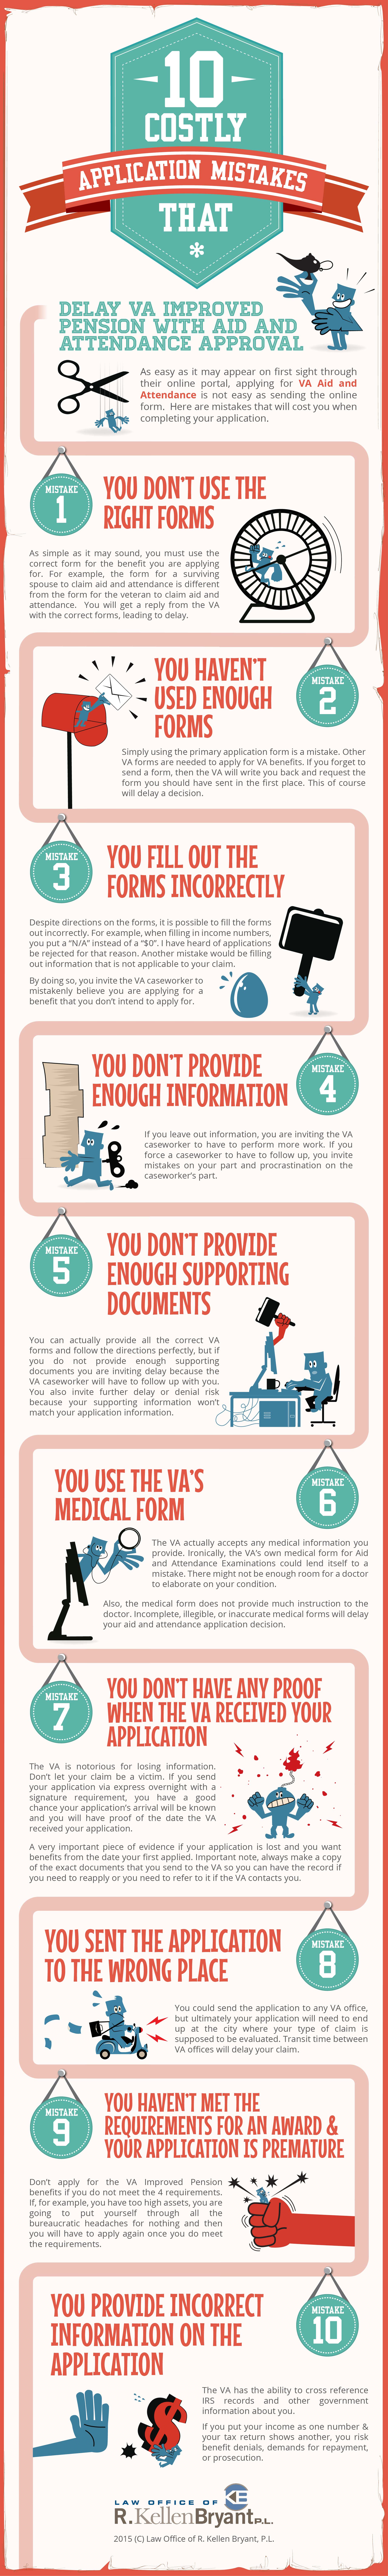 10 costly application mistakes infographic by R.Kellen Bryant P.L. ...